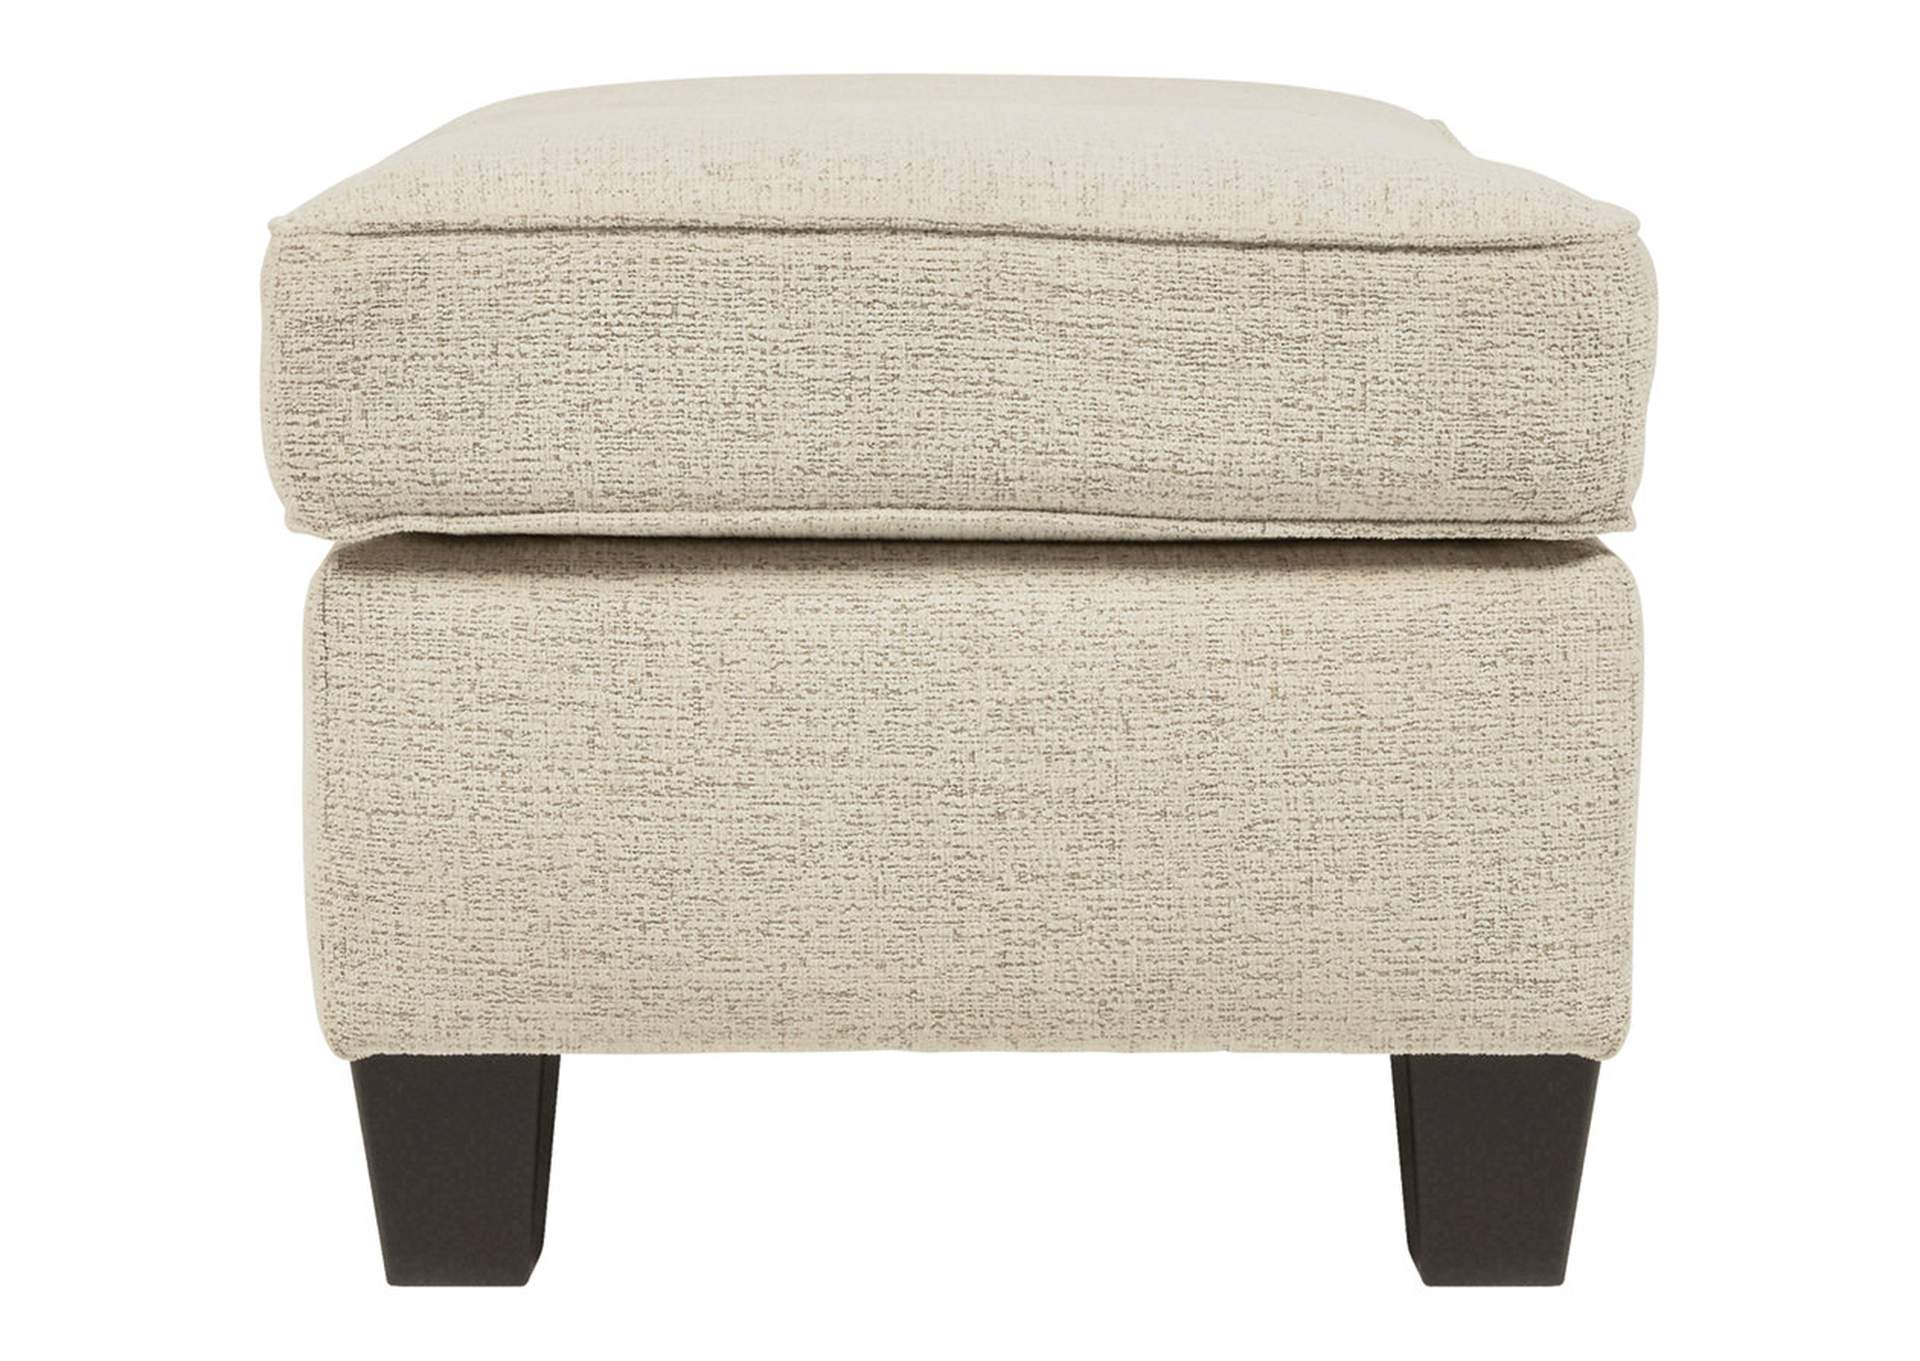 Abinger Ottoman,Signature Design By Ashley